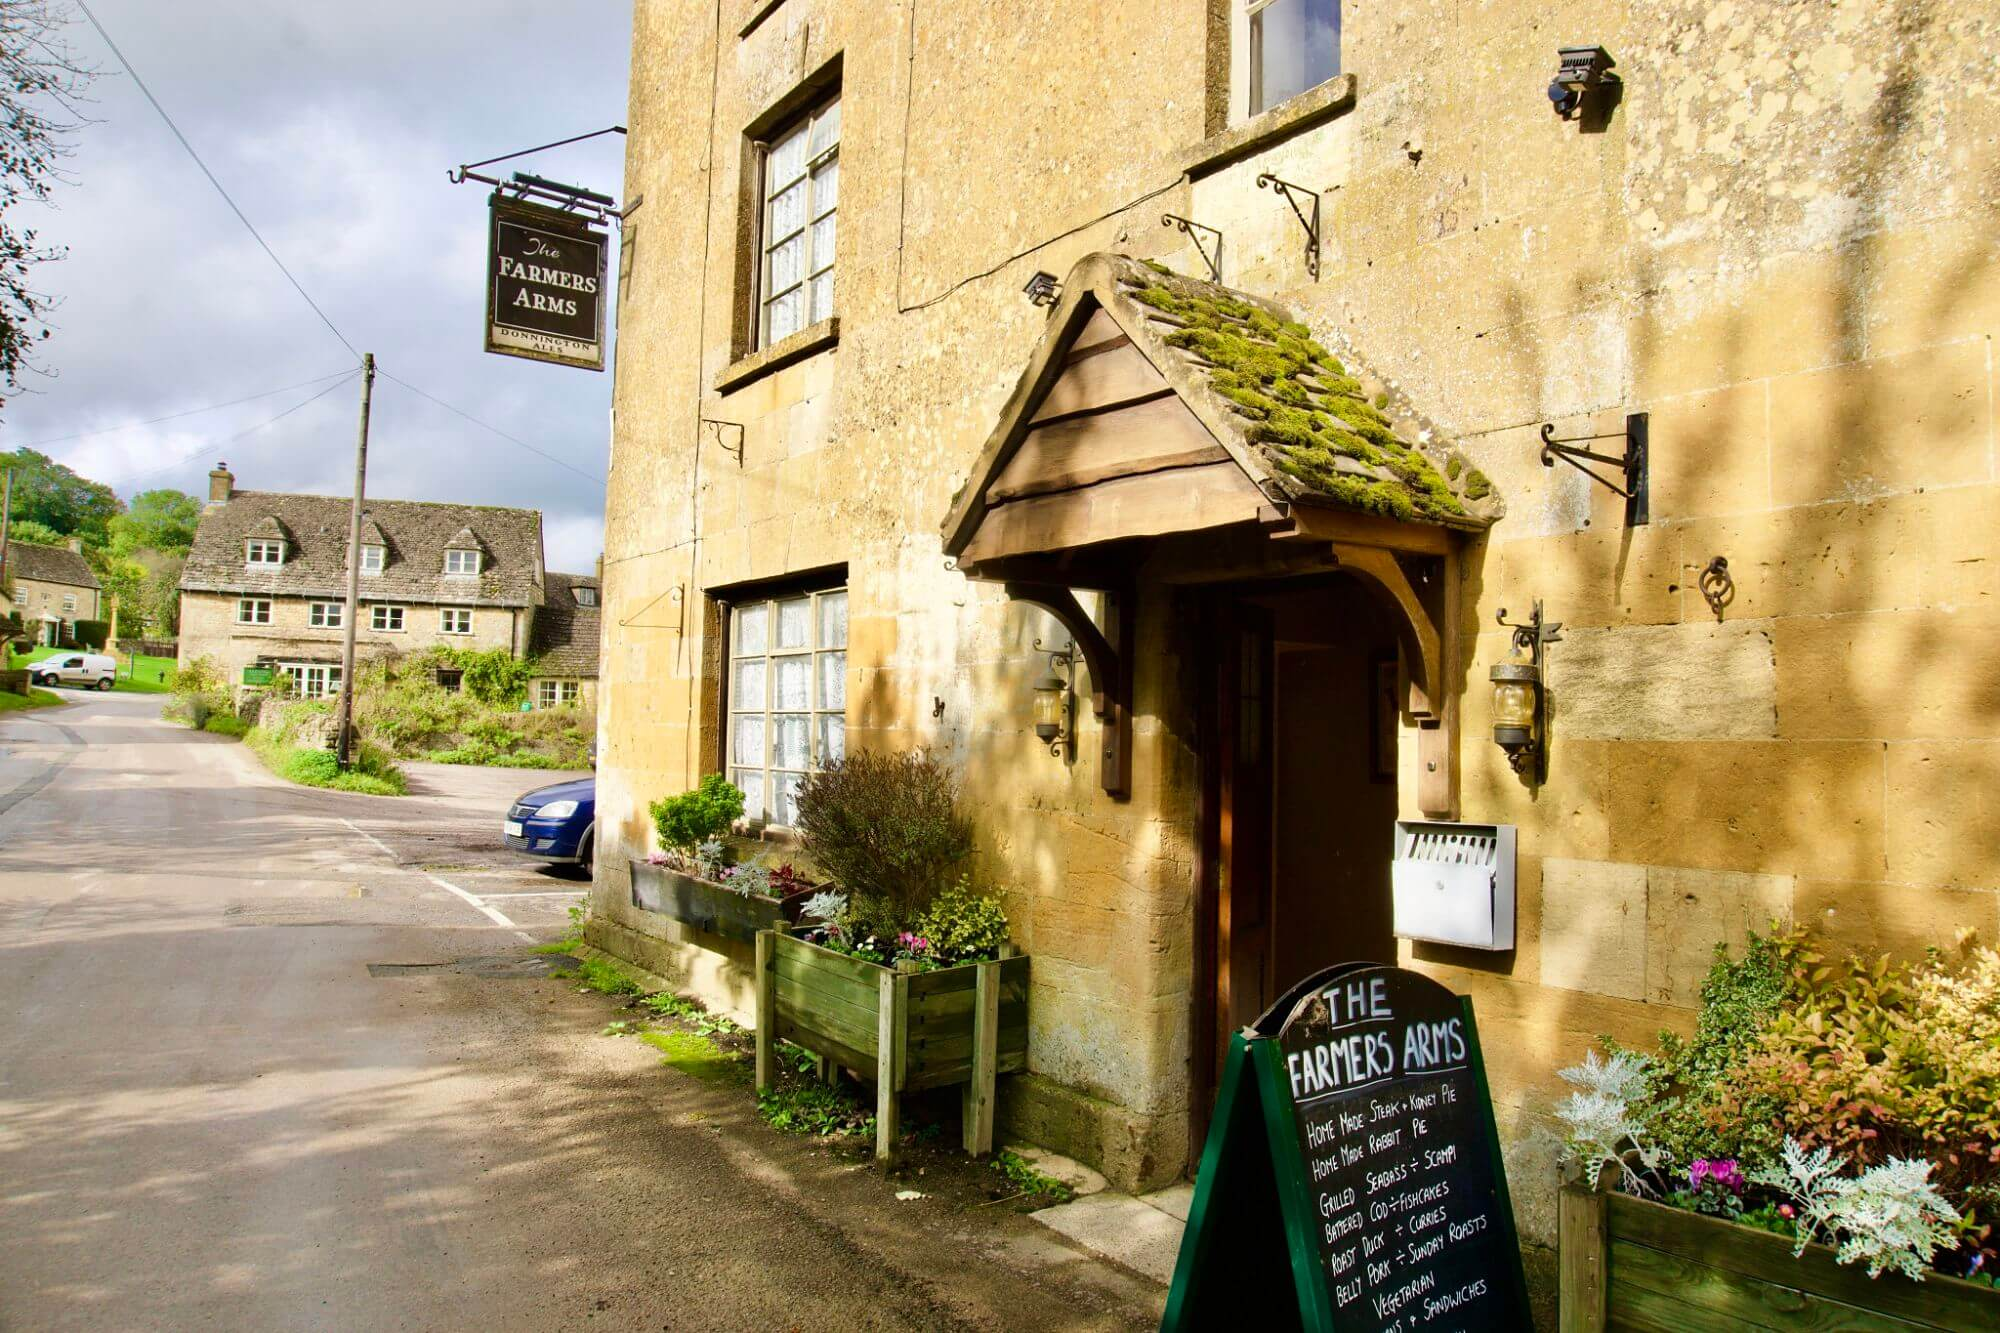 The Farmer's Arms pub in Guiting Power